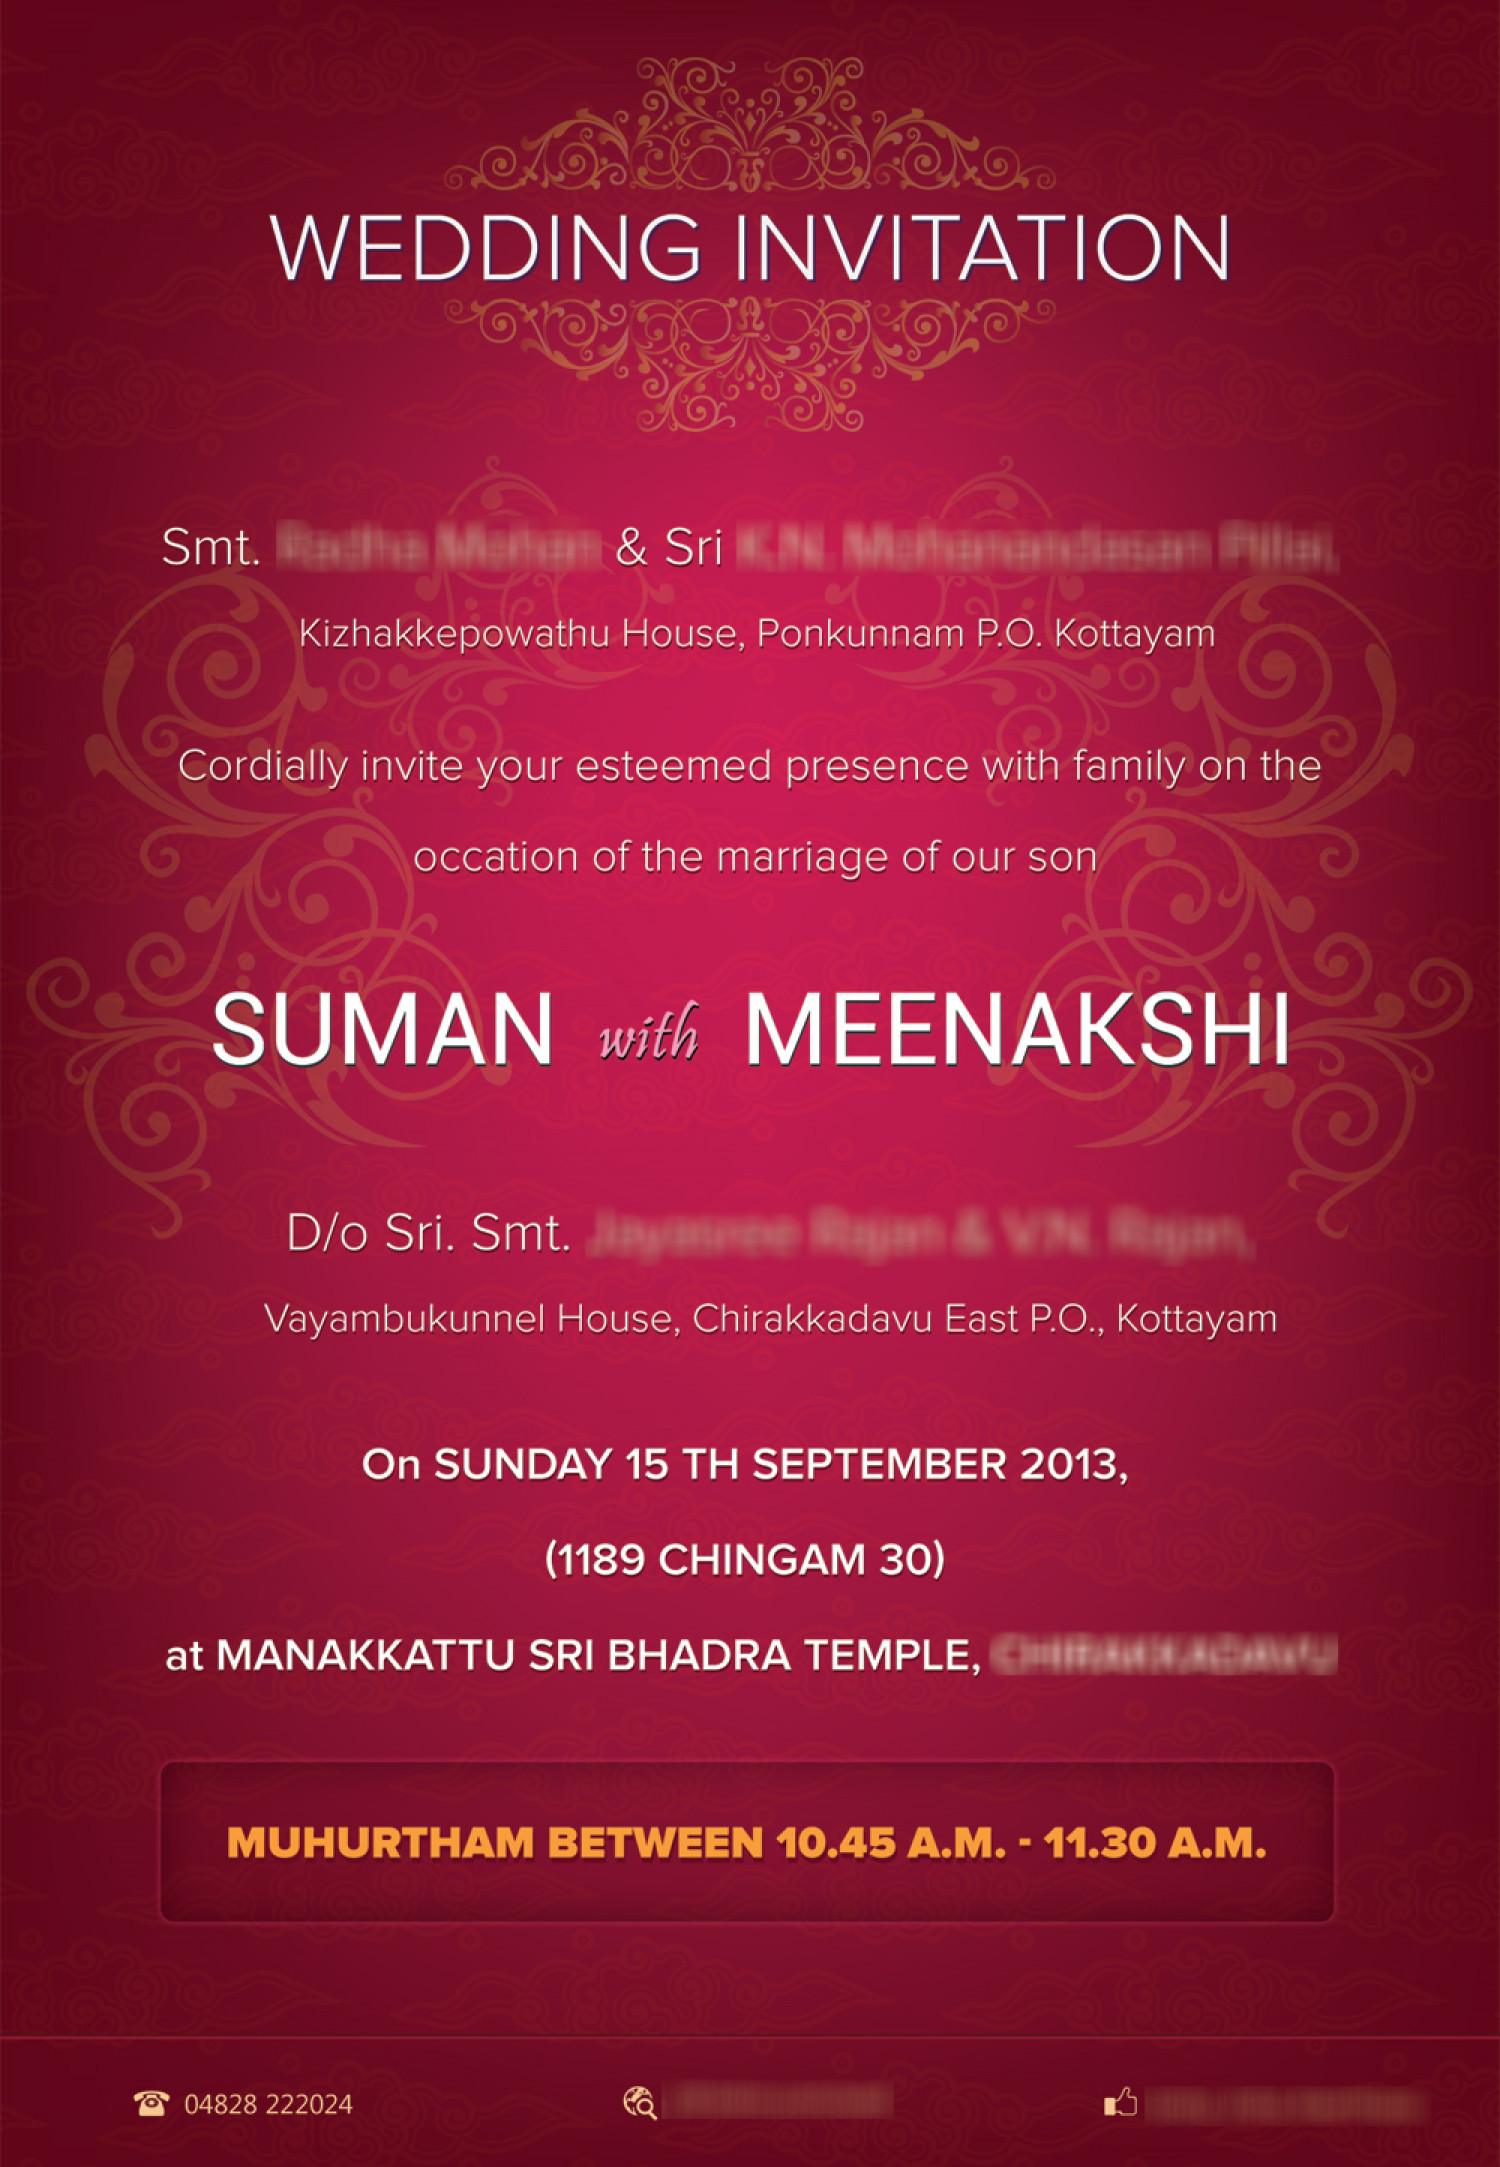 Marriage invitation card Visually